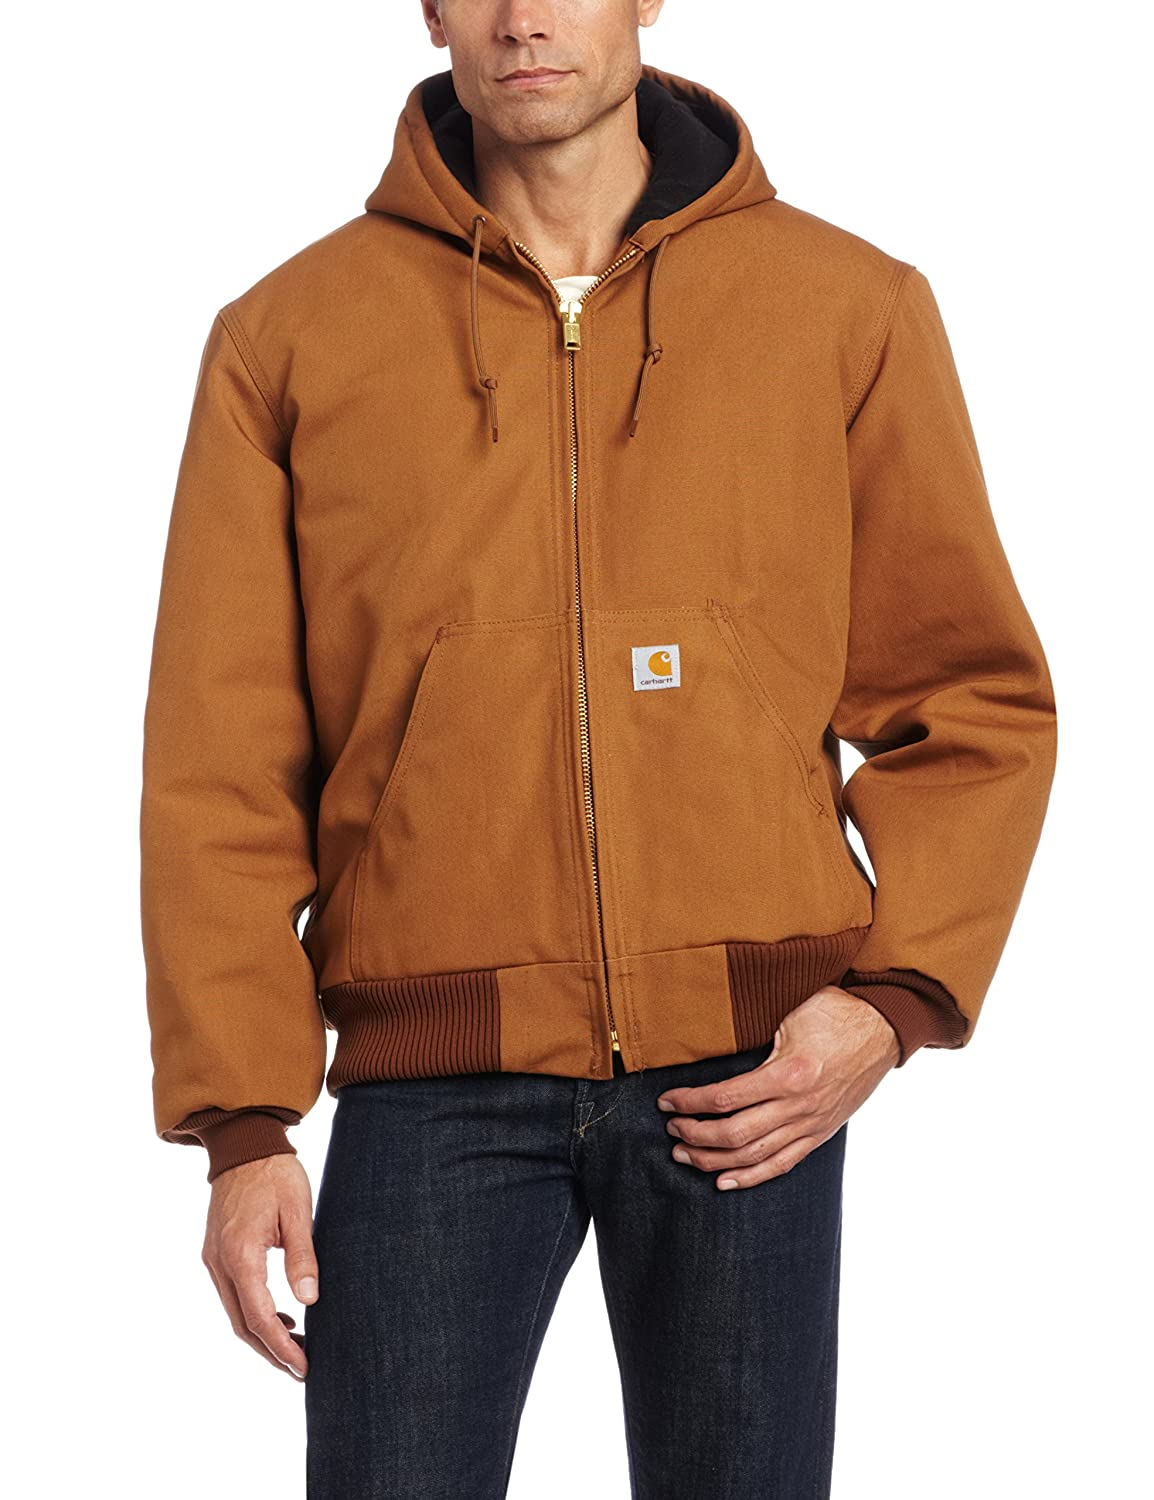 Carhartt Men's Quilted Flannel Lined Duck Active Jacket J140 Carhartt Sportswear - Mens